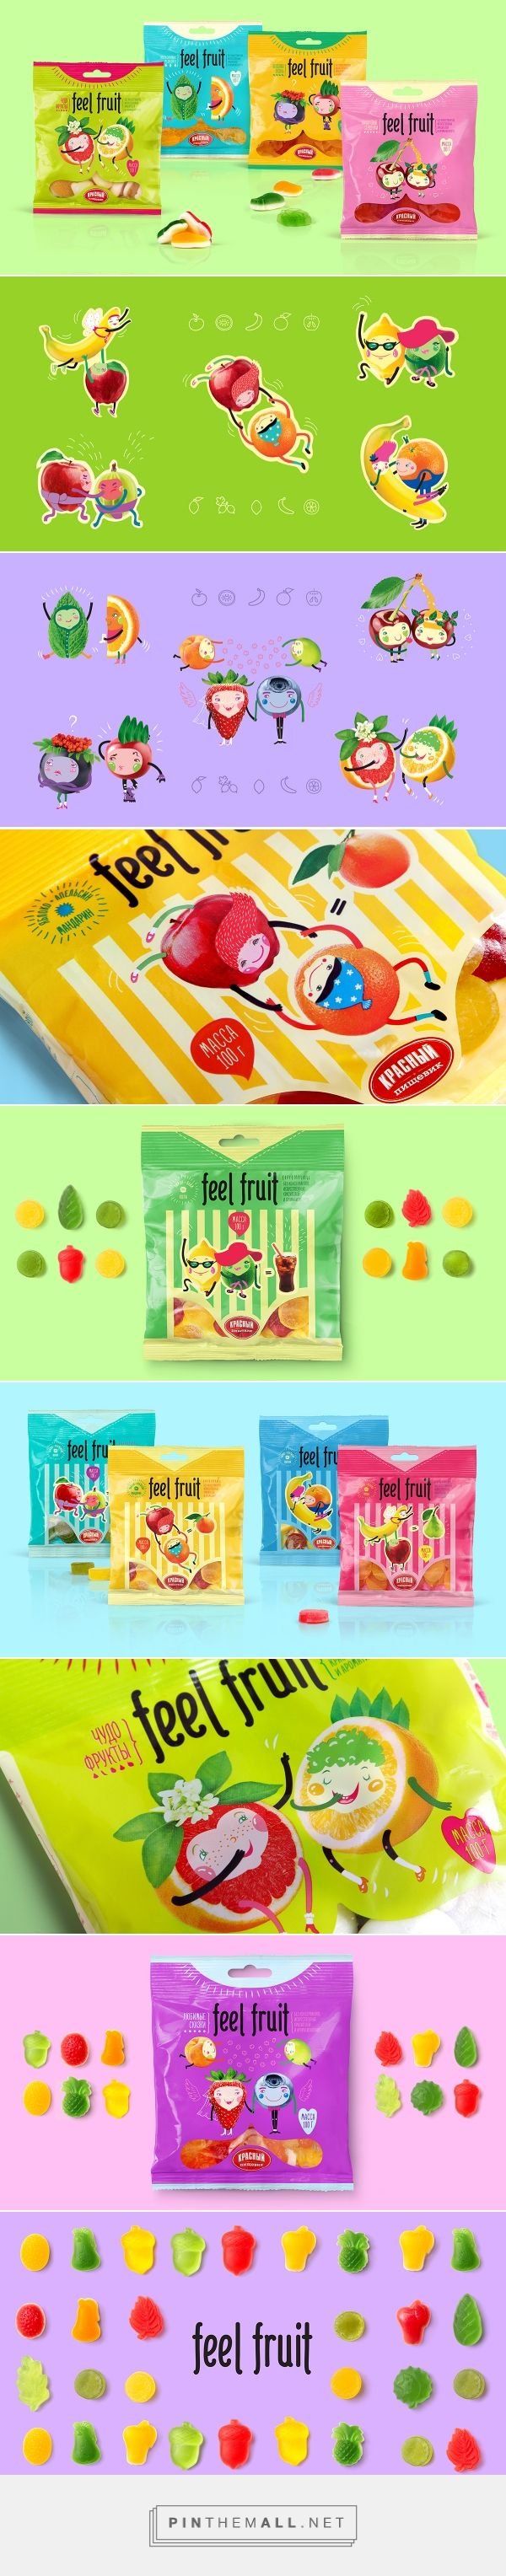 FeelFruit — мармелад от Fabula Branding who wouldn't be happy with this fun candy #packaging curated by Packaging Diva PD created via http://thebestpackaging.ru/2014/12/feelfruit-marmelad-ot-fabula-branding.html